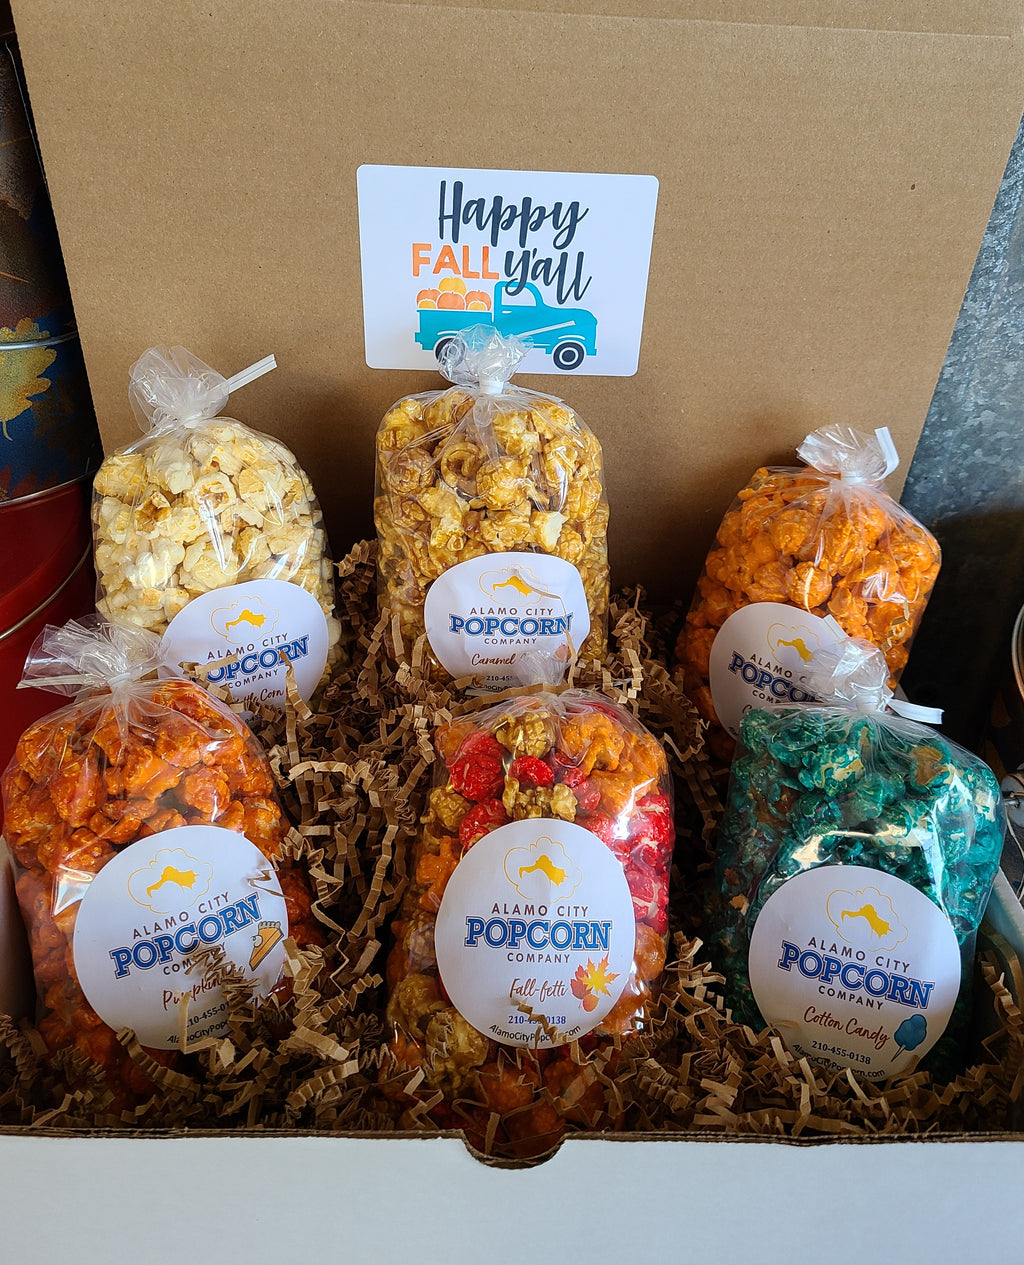 Happy Fall Y'all Box - Includes 6 mini bags of our favorite, sweet fall flavors, Caramel Apple, Candy Corn, Pumpkin Pie, Kettle Corn,  Cotton Candy and our Fall-fetti mix. Price includes shipping to any front door in the continental U.S.